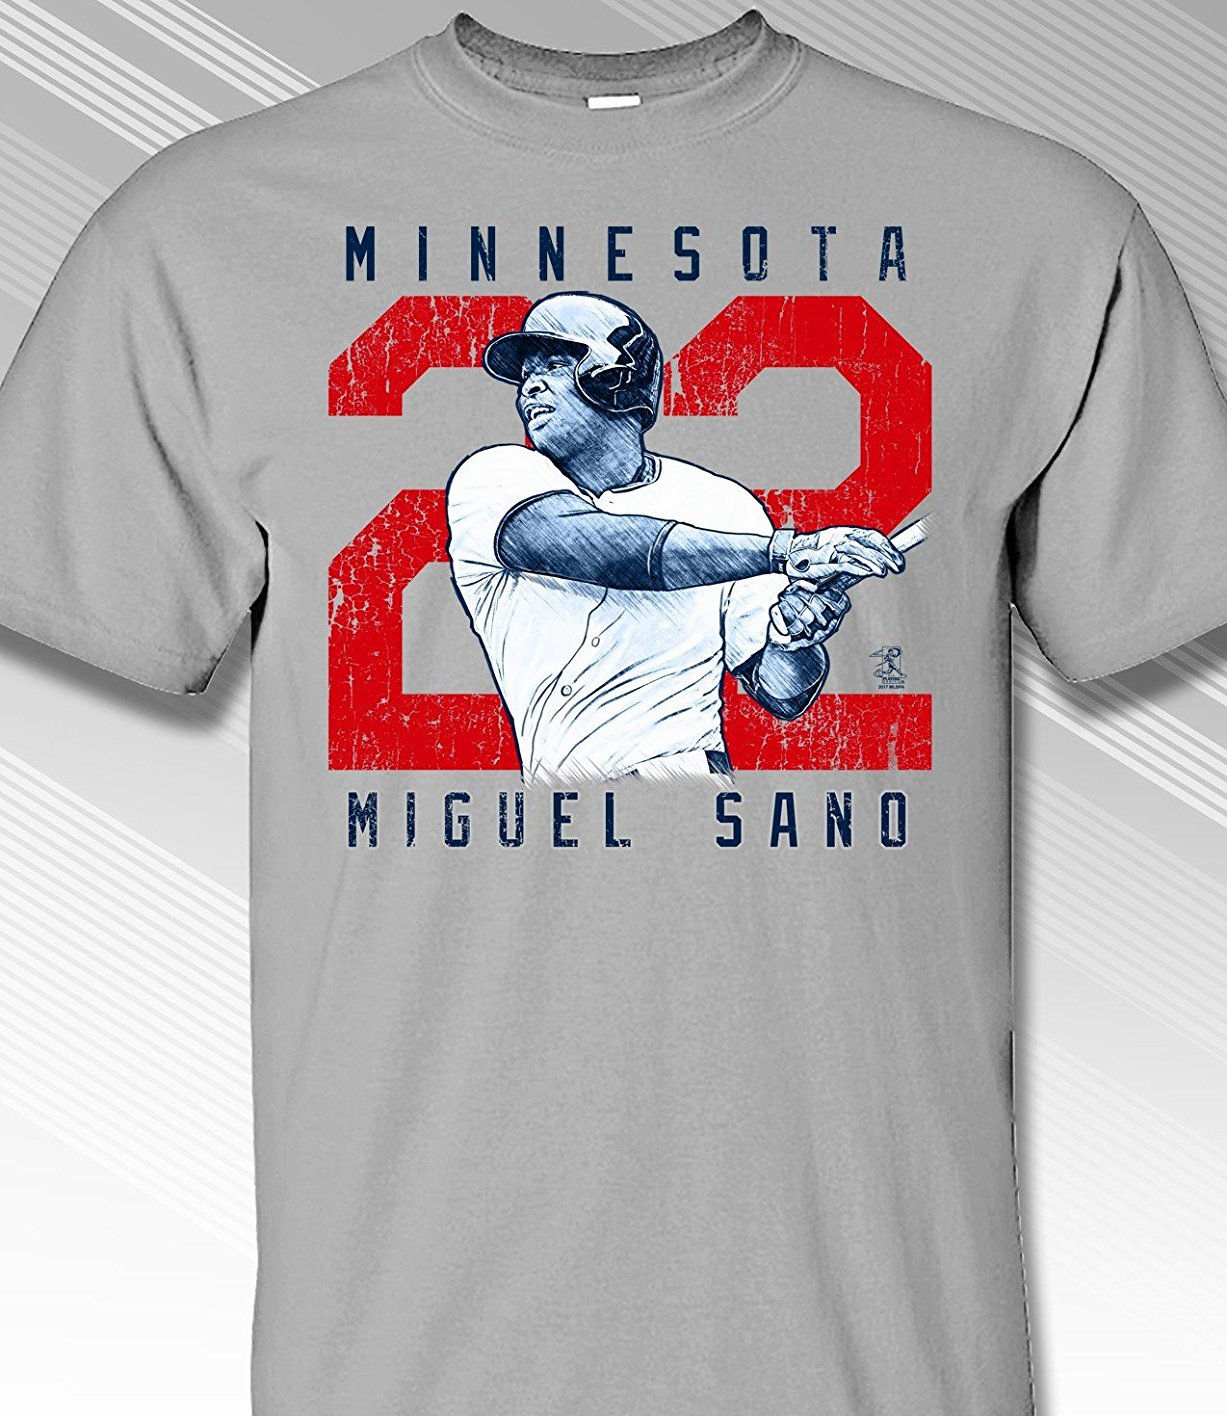 Miguel Sano Rough Cut Minnesota 22 T-Shirt<br>Short or Long Sleeve<br>Youth Med to Adult 4X